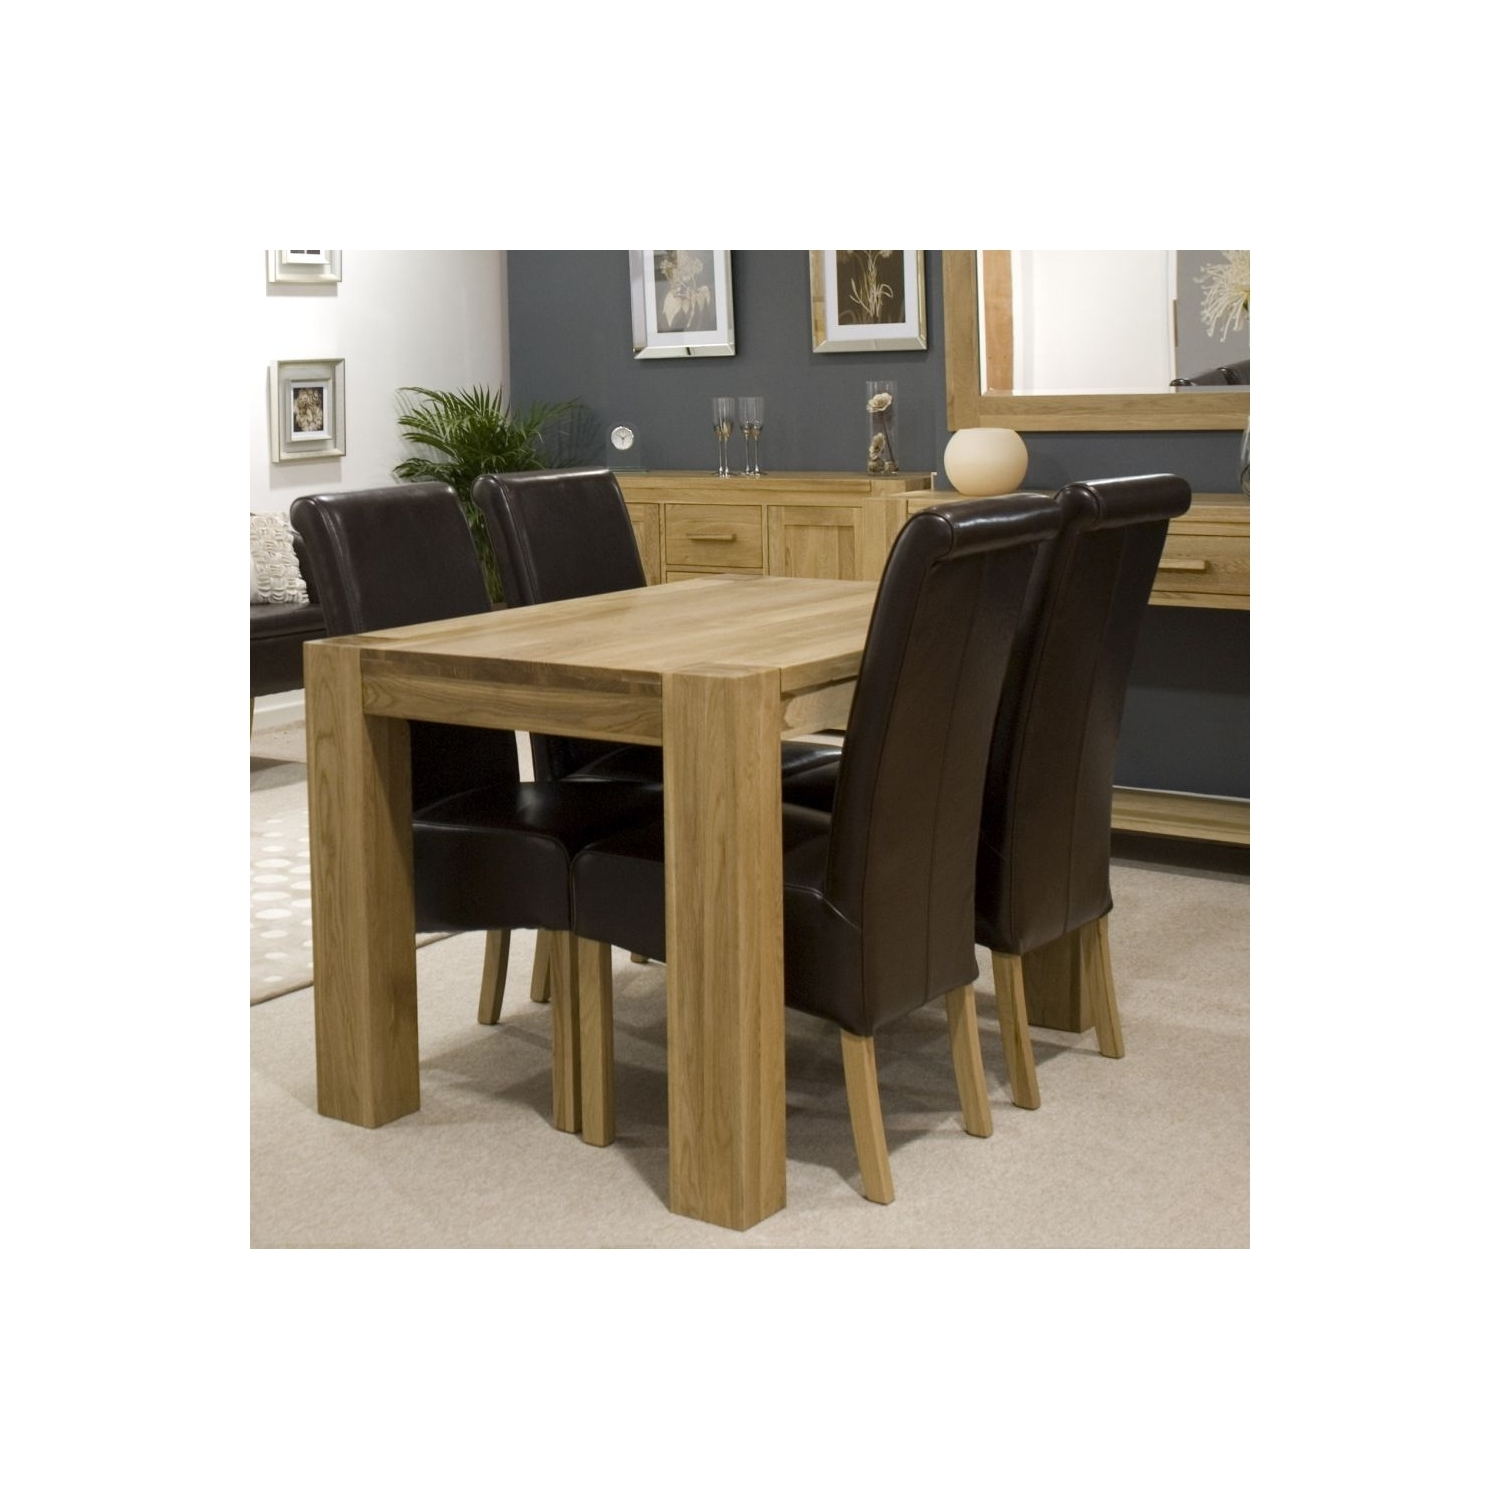 Pemberton Solid Oak Furniture Dining Table With Four Brown Leather Intended For Preferred Oak Furniture Dining Sets (View 21 of 25)